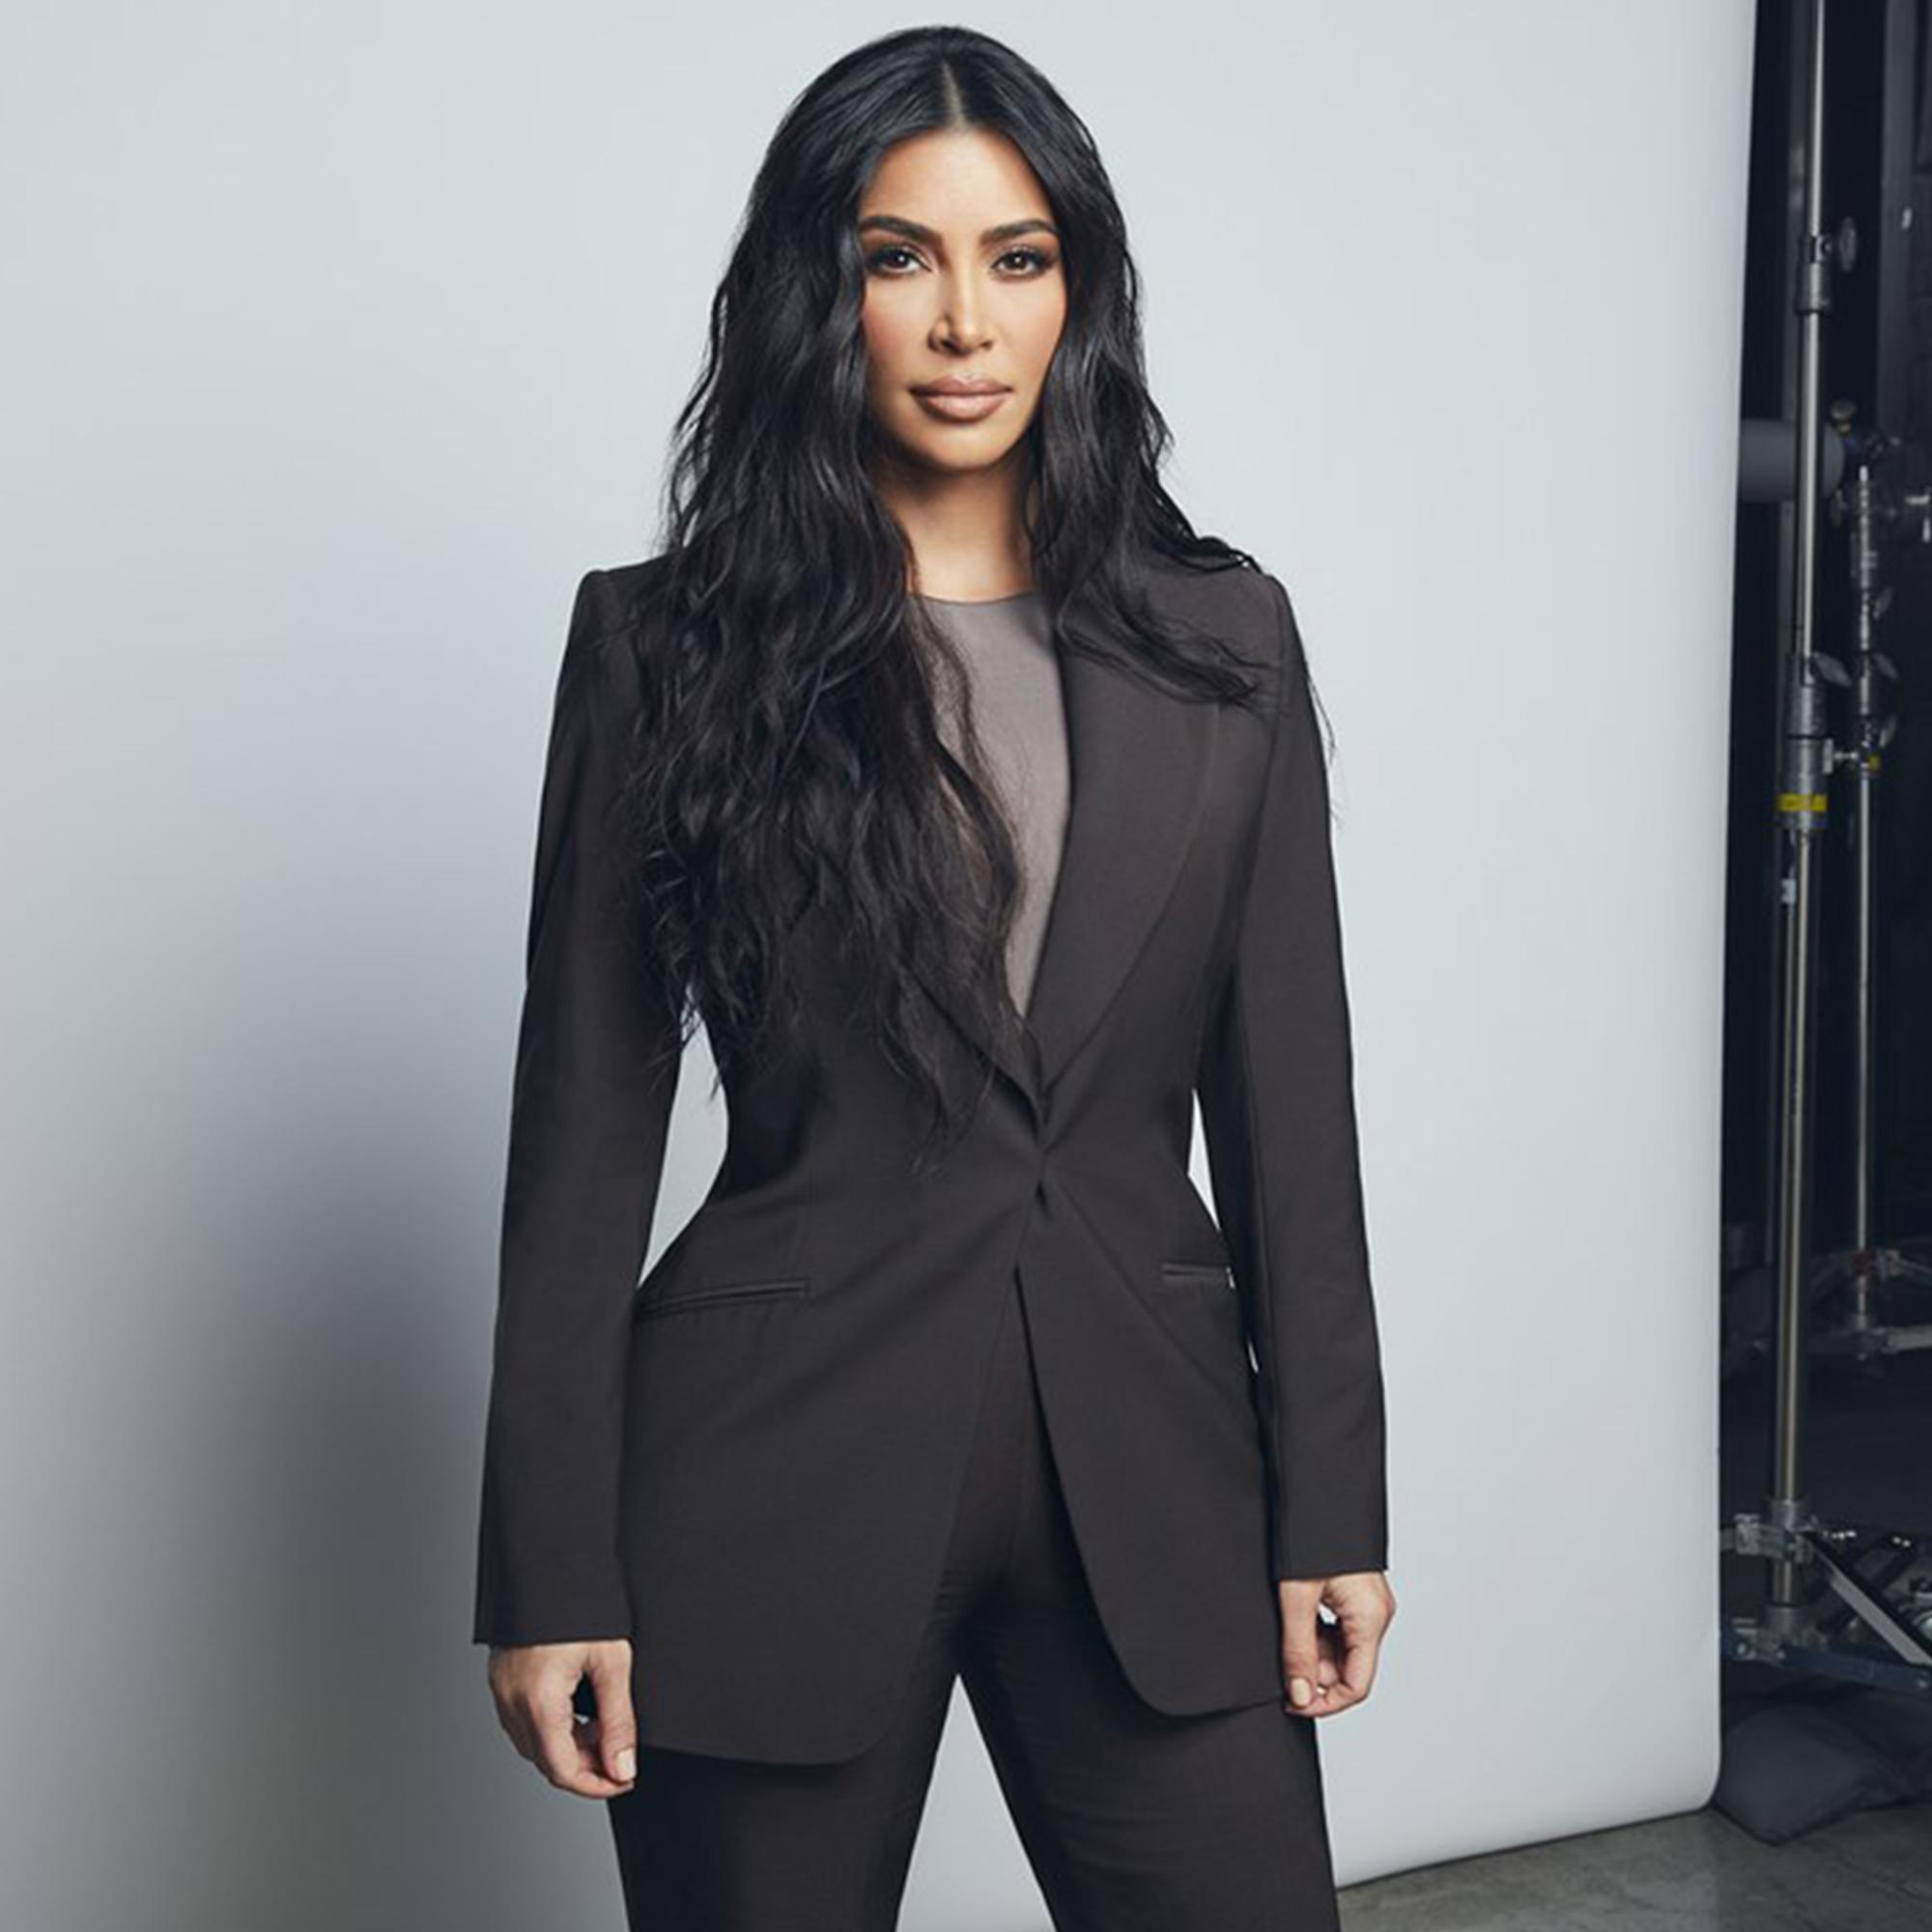 Kim Kardashian wipes millions off Facebook's value by boycotting Instagram